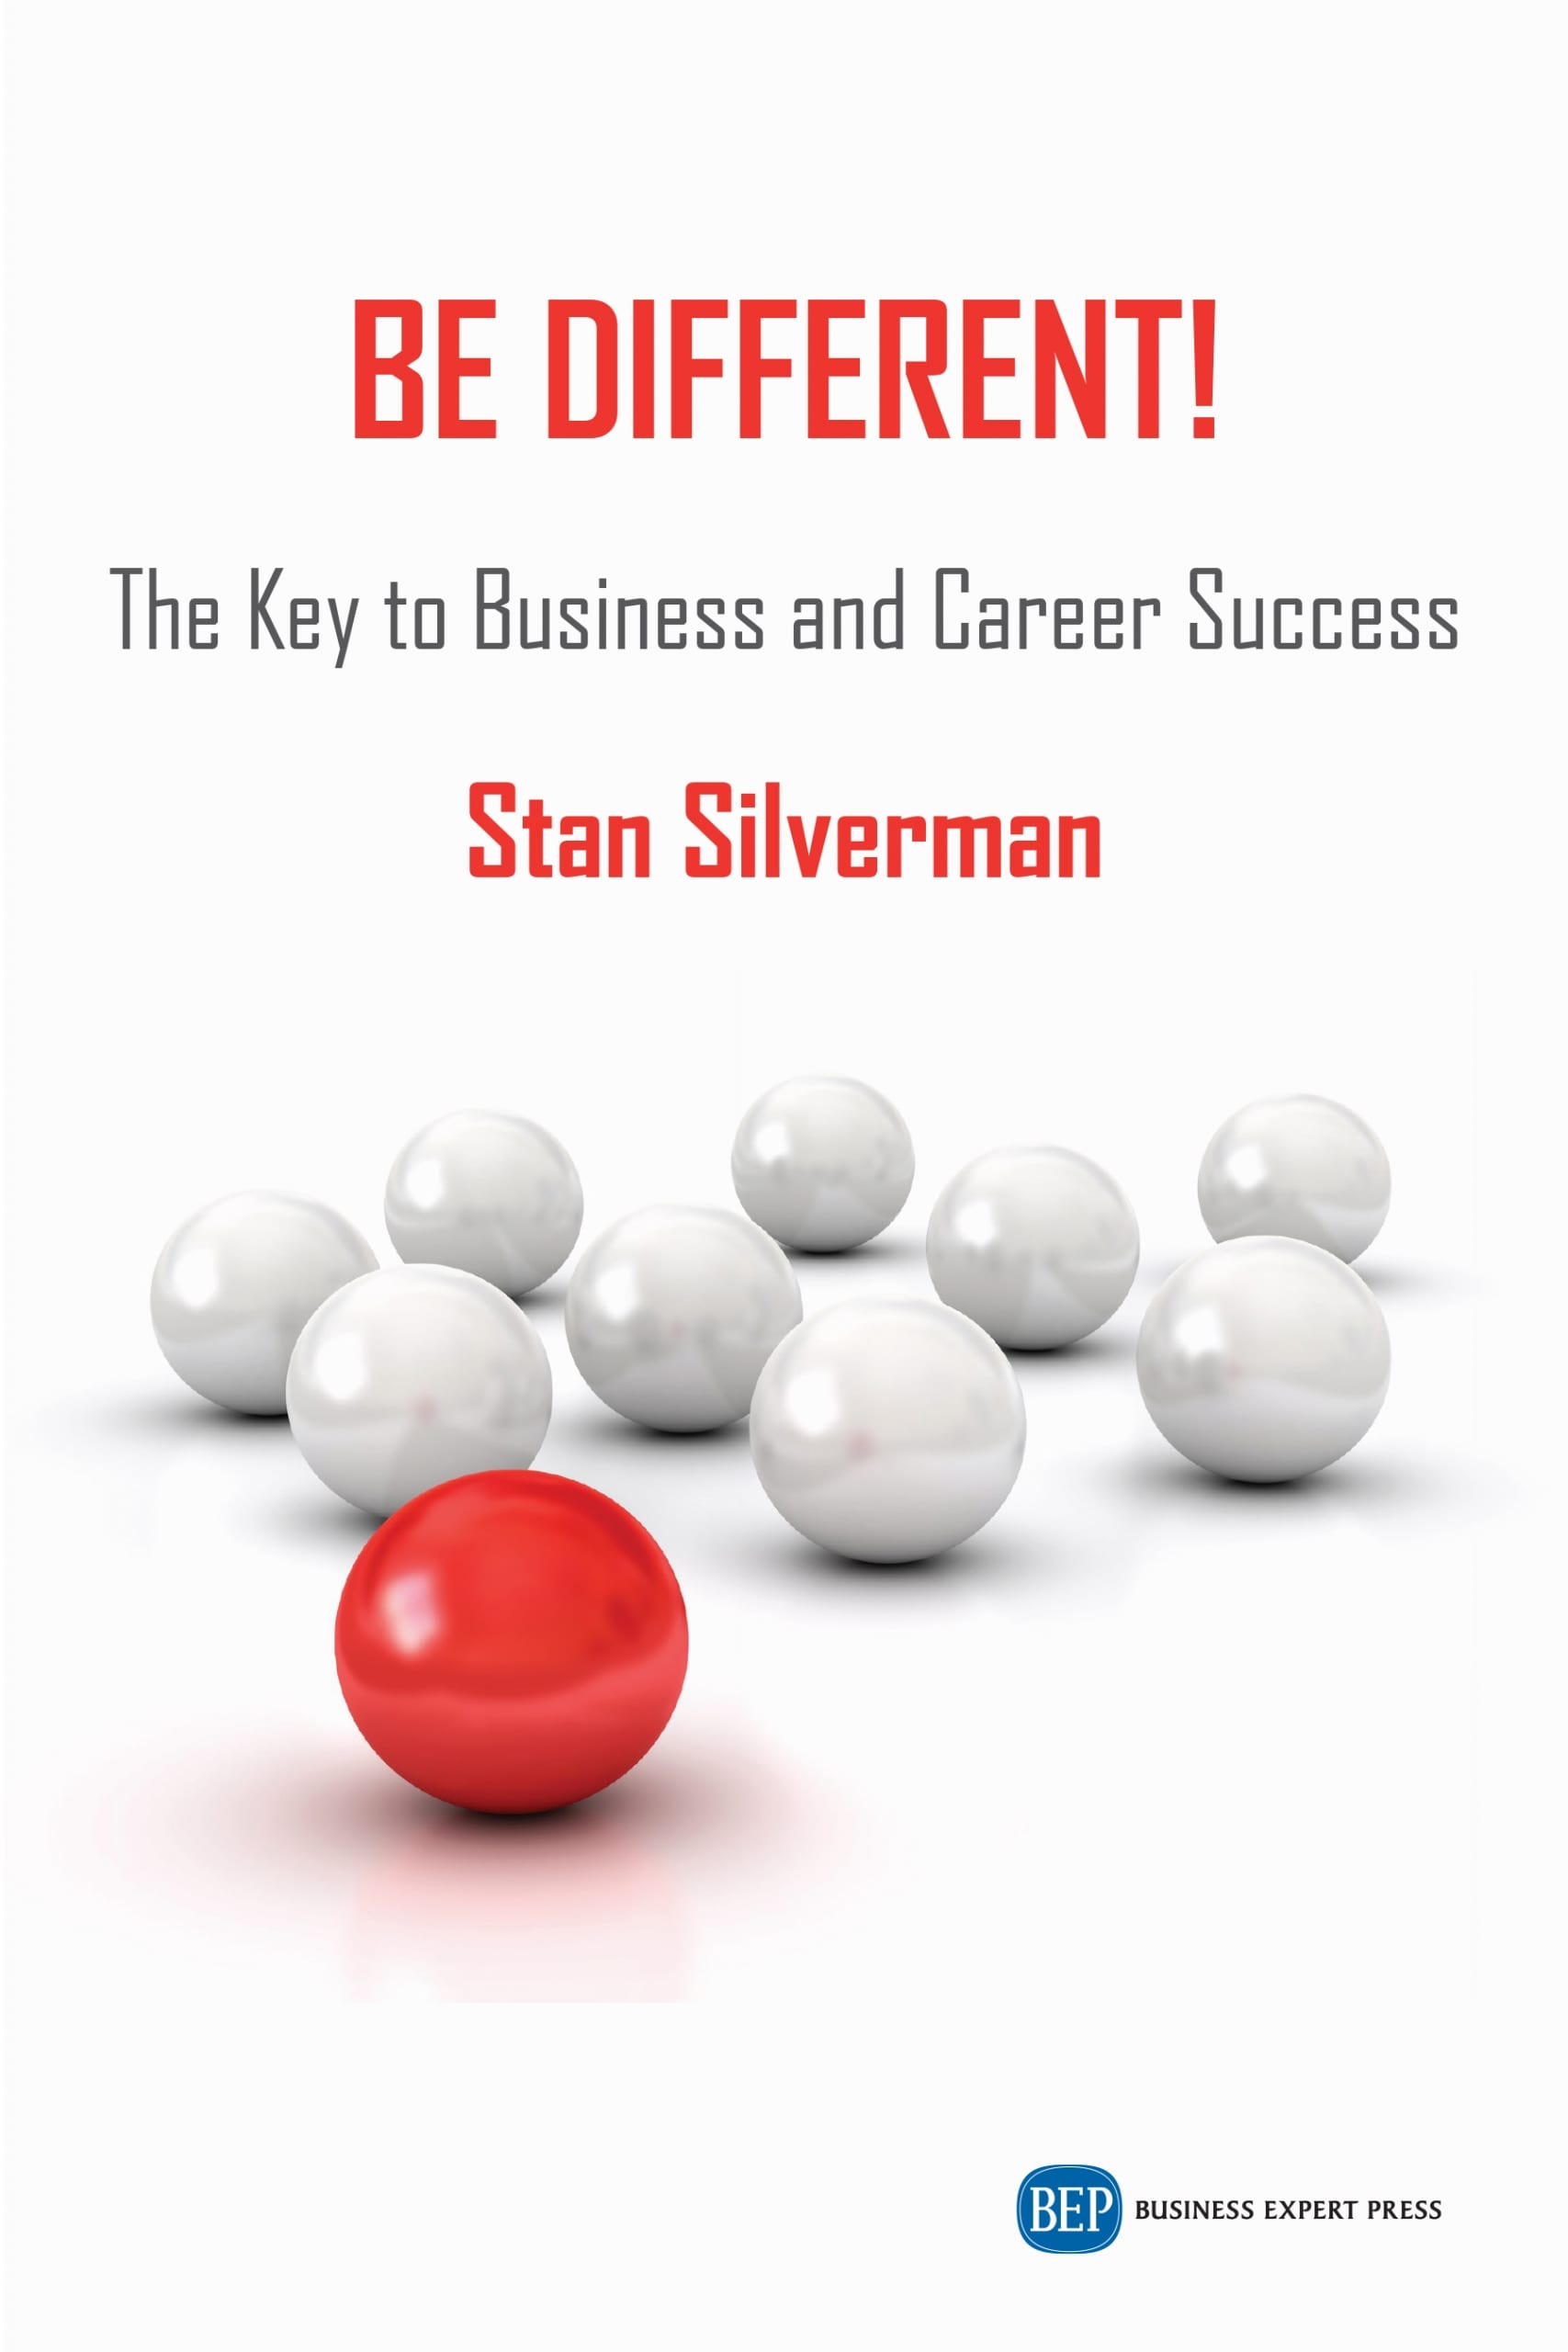 StrategyDriven Management and Leadership Article | How to Build Trust with Those You Lead